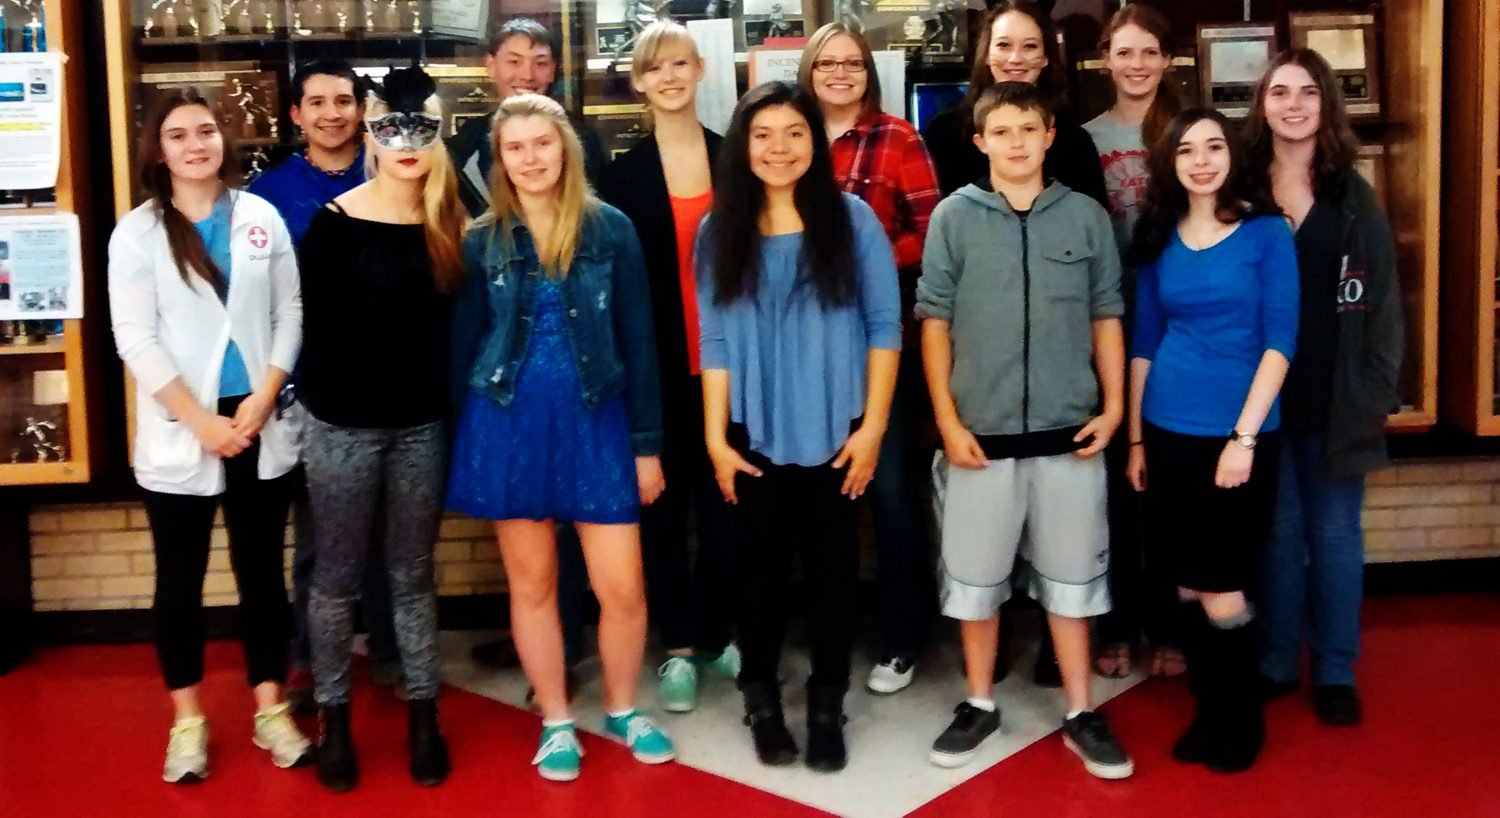 Members of Key Club take a group shot after raising over $200 for the Eliminate Project.